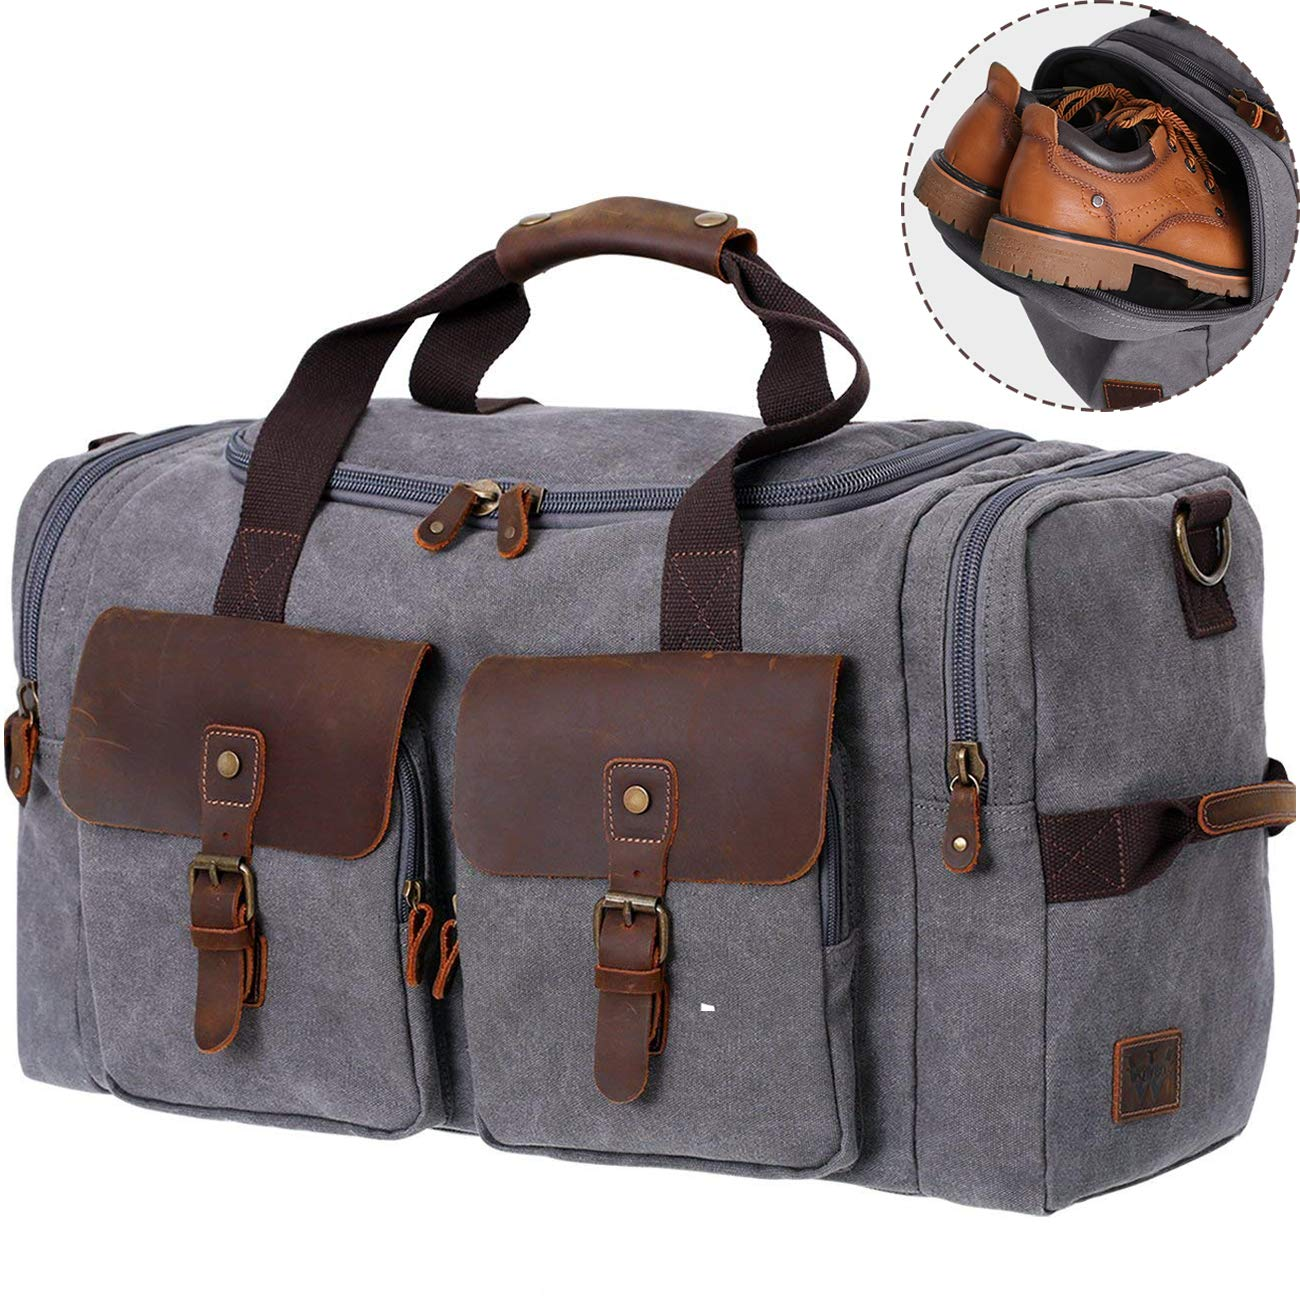 ac9cbe9fd2 WOWBOX Duffel Bag Weekender Bag for Men and Women Genuine Leather Canvas  Travel Overnight Carry on